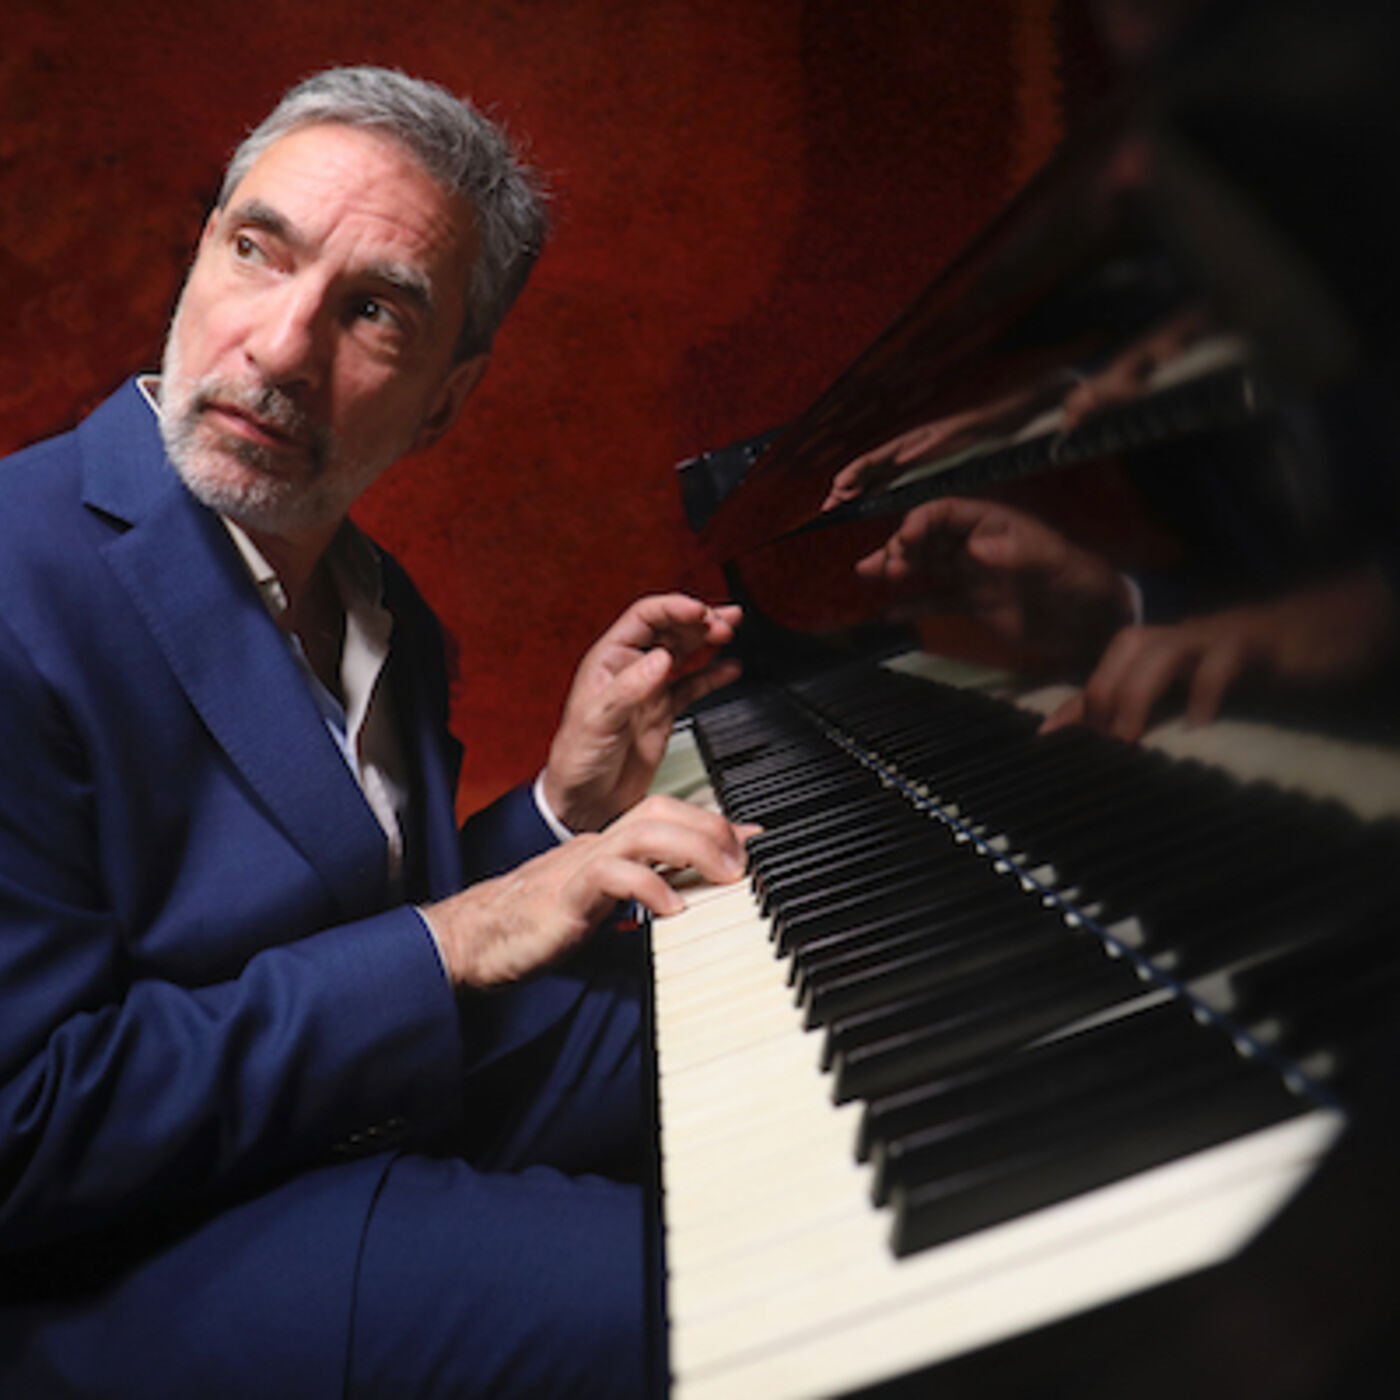 Episode 11 - An interview with the fantastic pianist and organist Mike Ledonne.